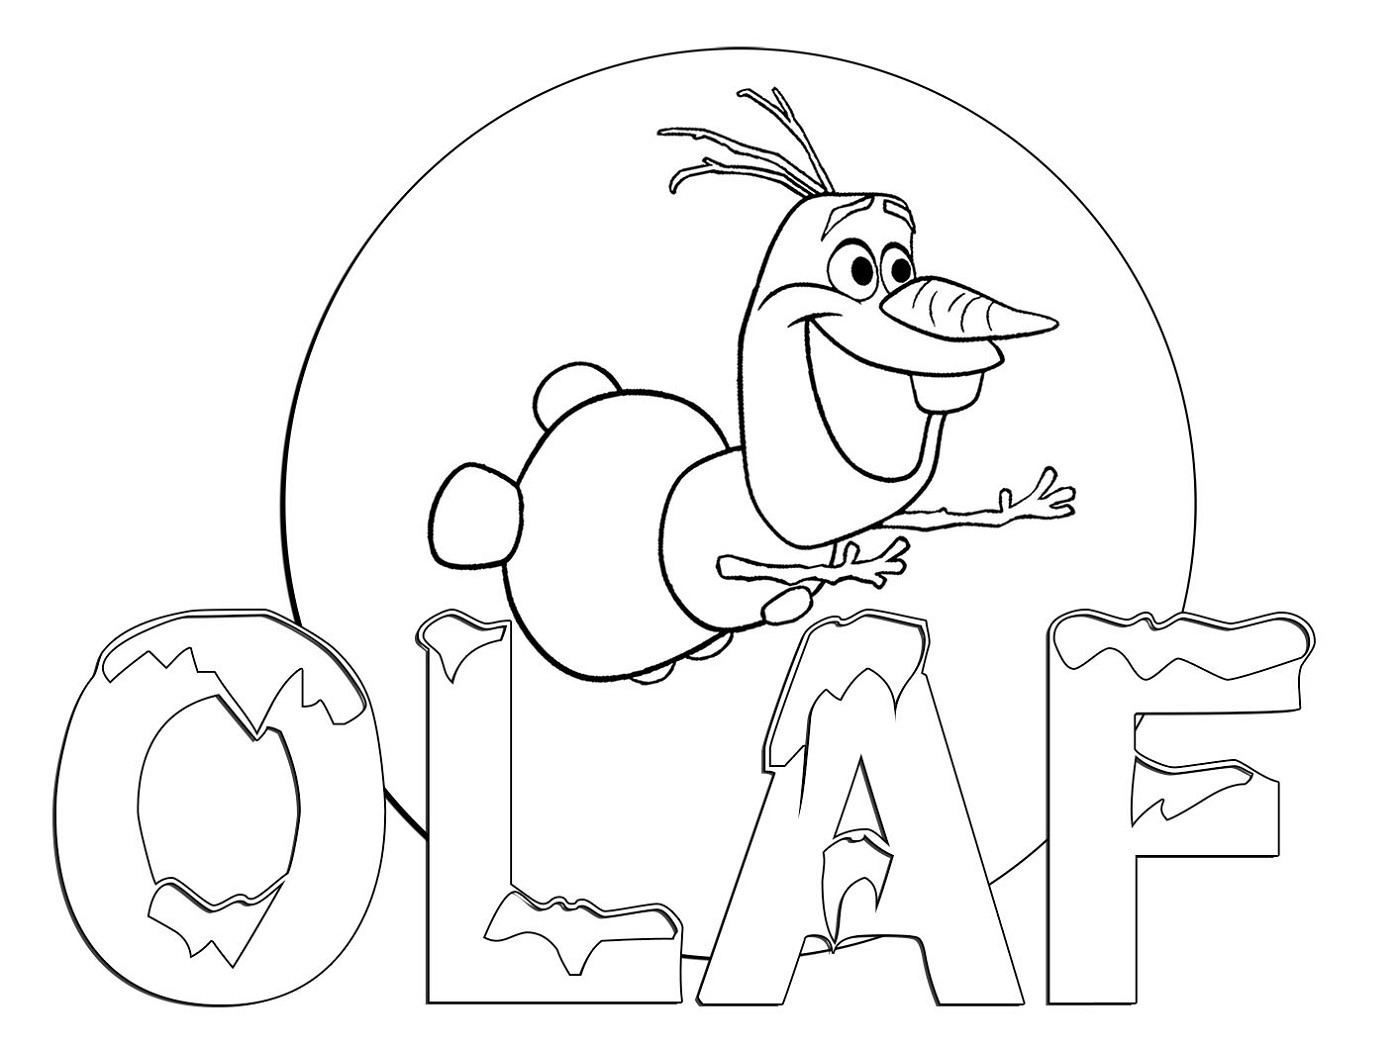 Coloring Worksheets for Children